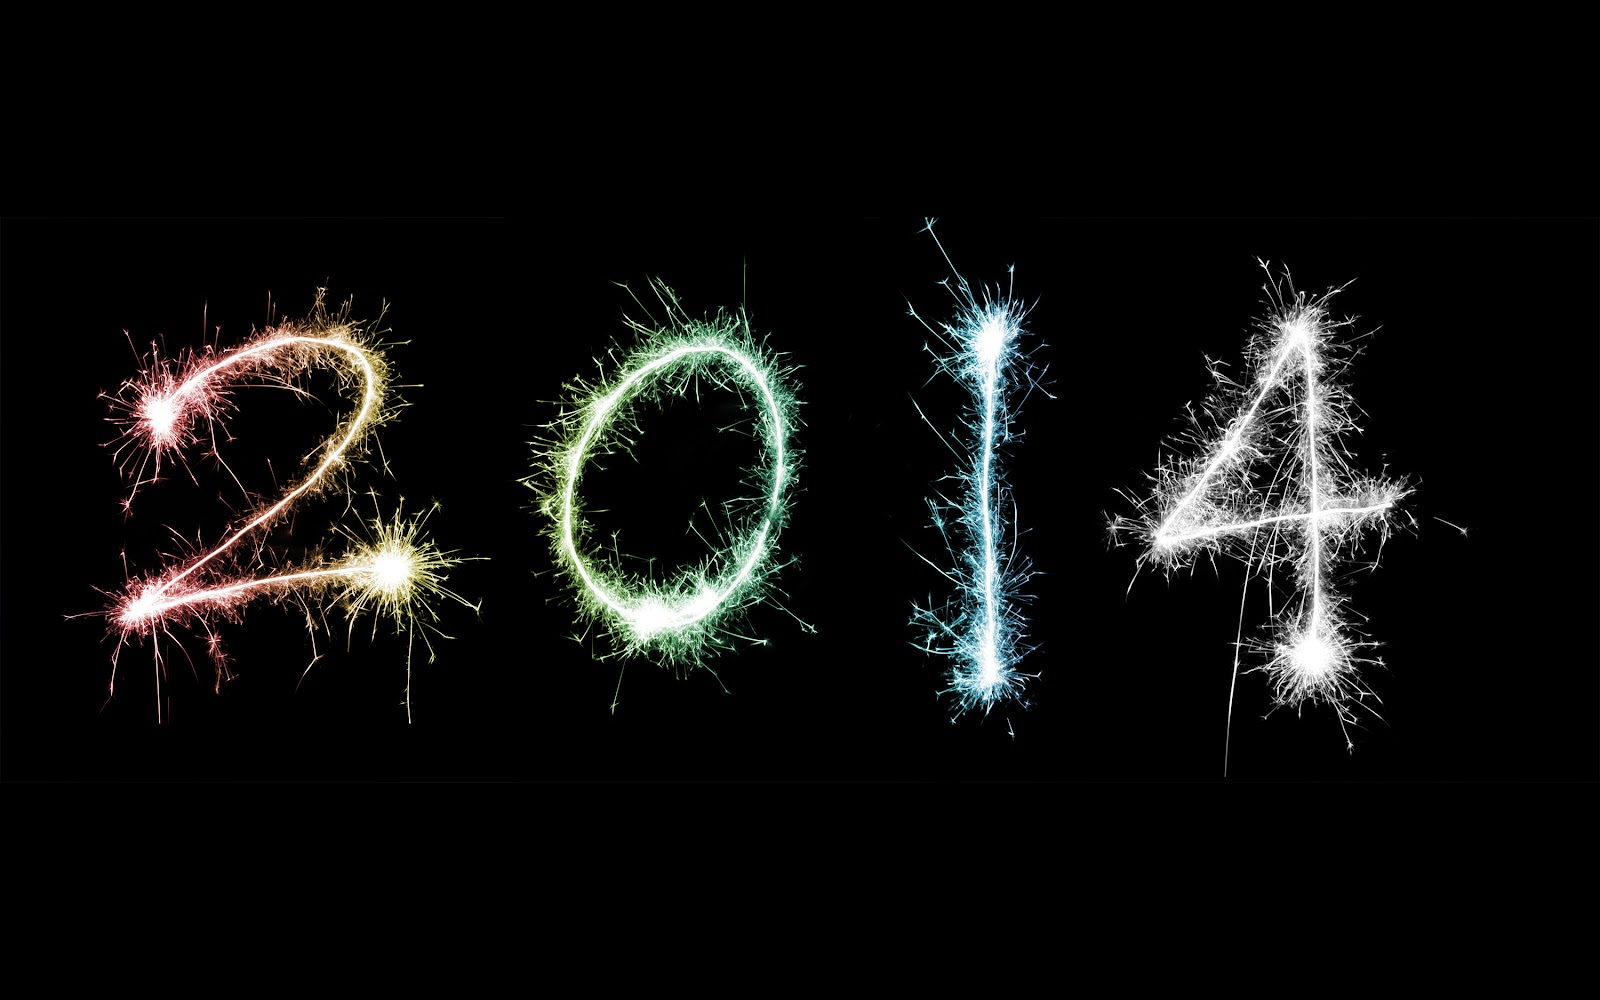 here comes 2014! let's look back, shall we?